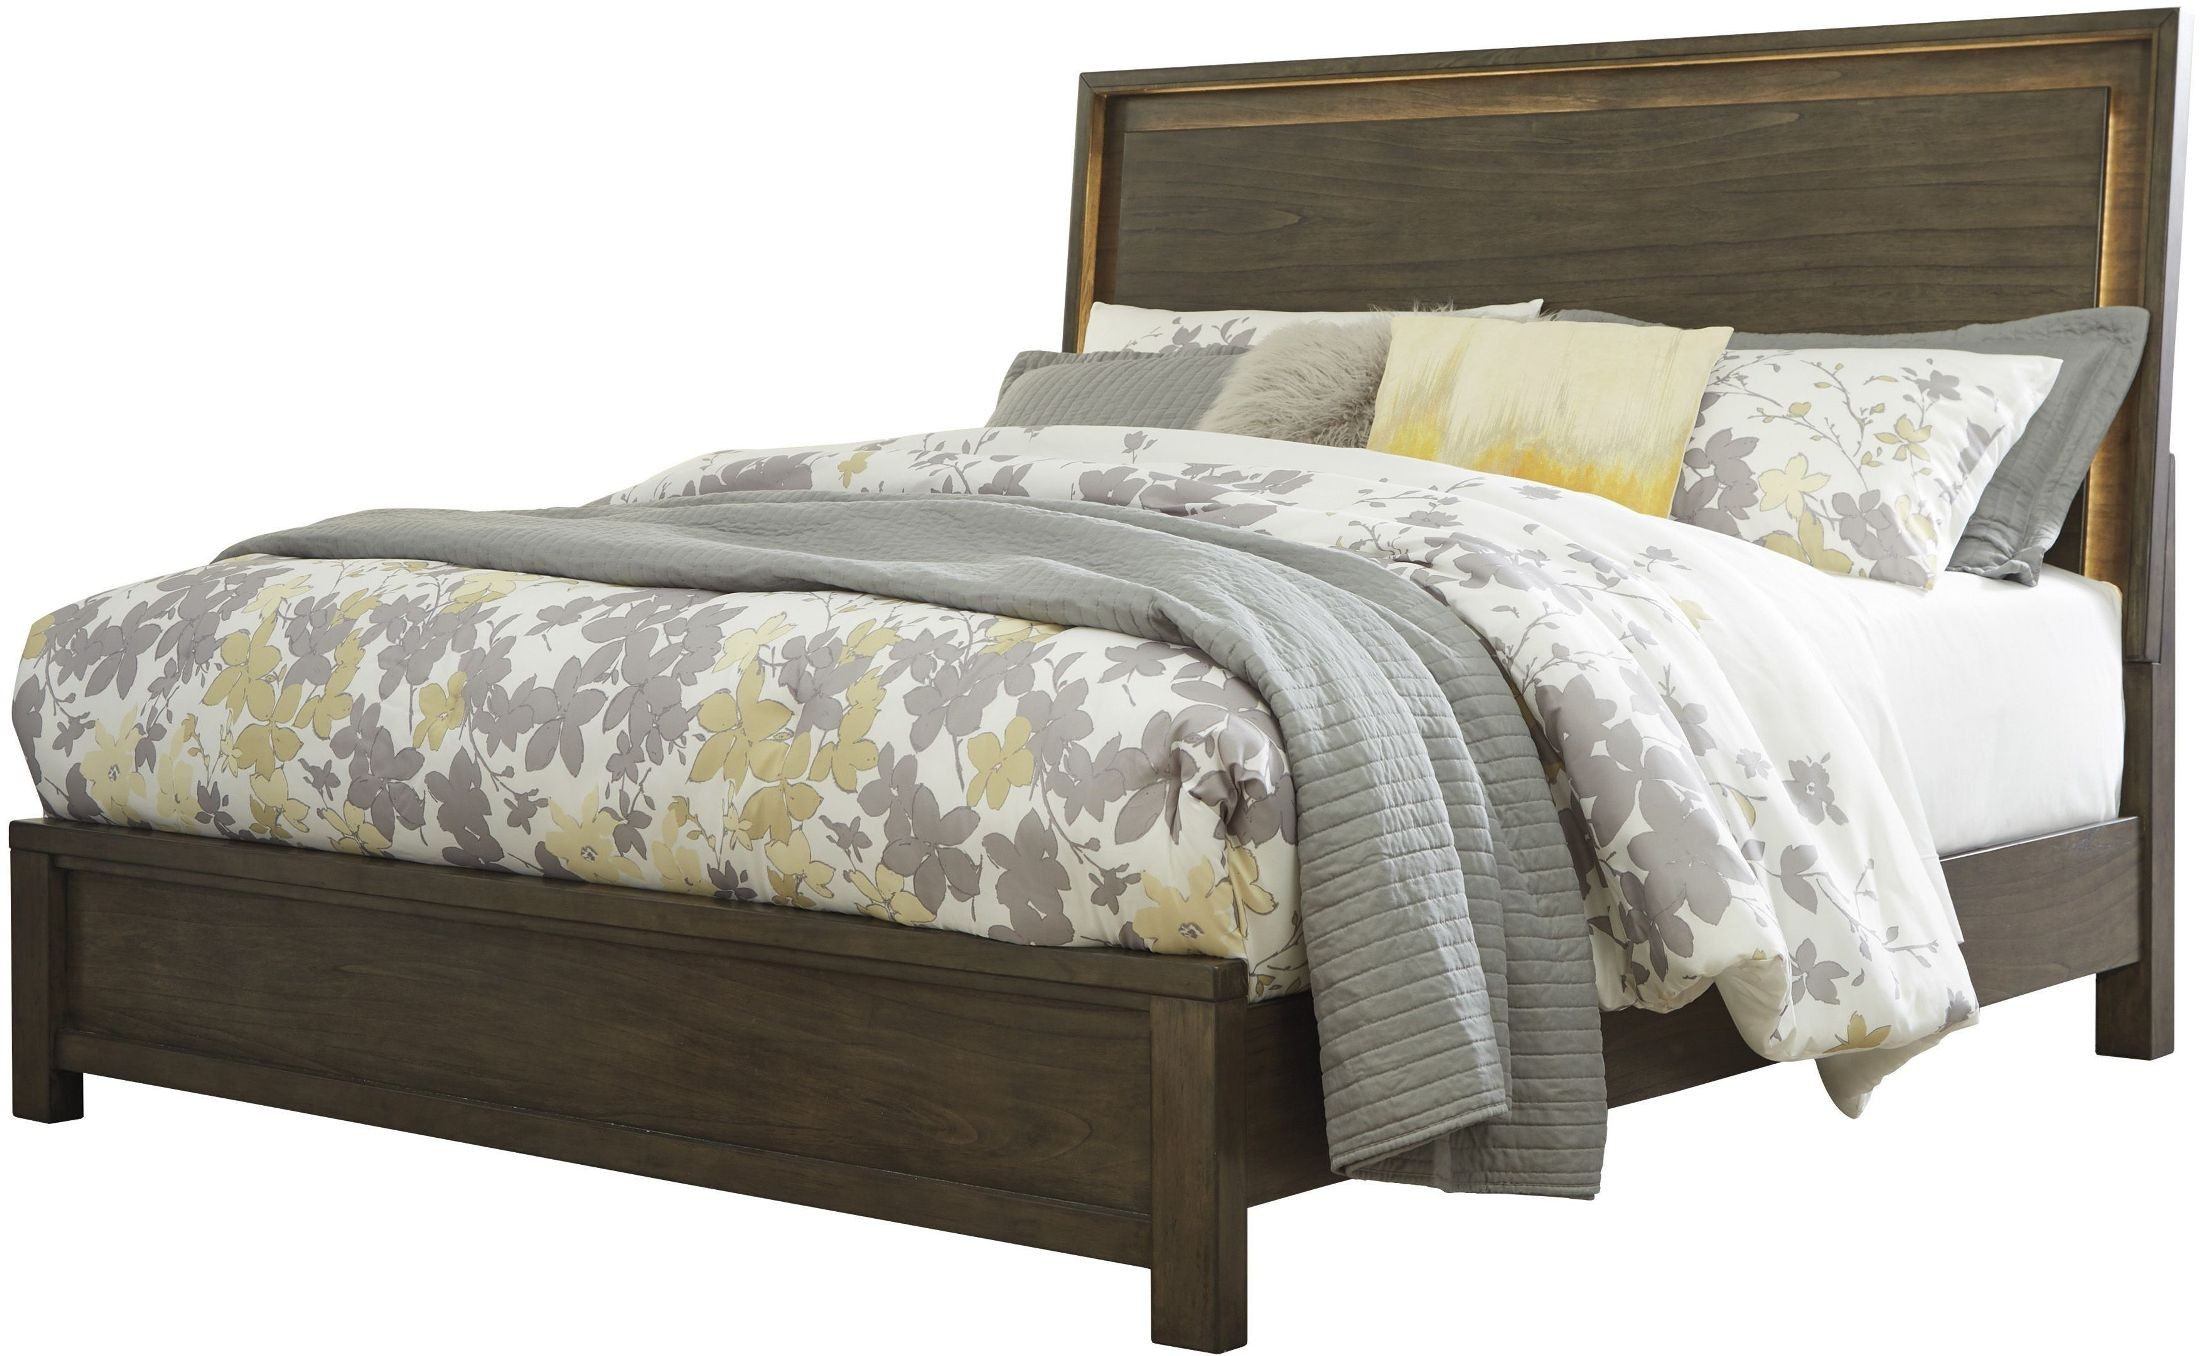 Camilone dark gray queen panel bed b675 54 57 96 ashley for Panel beds for sale